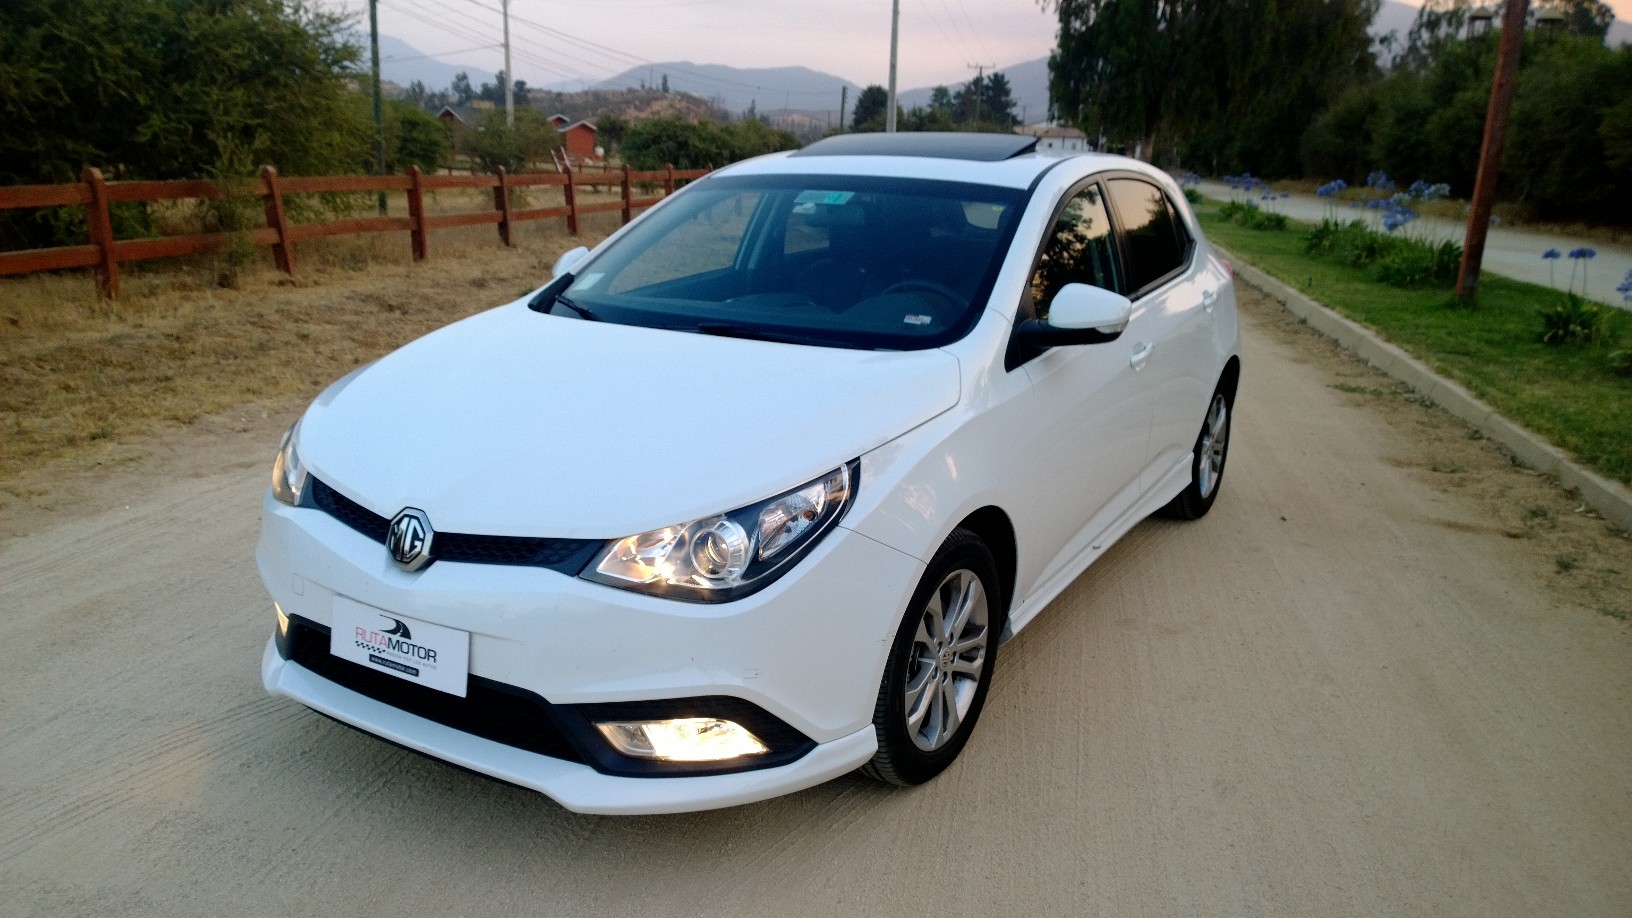 2014 Mg Mg5 Pictures Information And Specs Auto